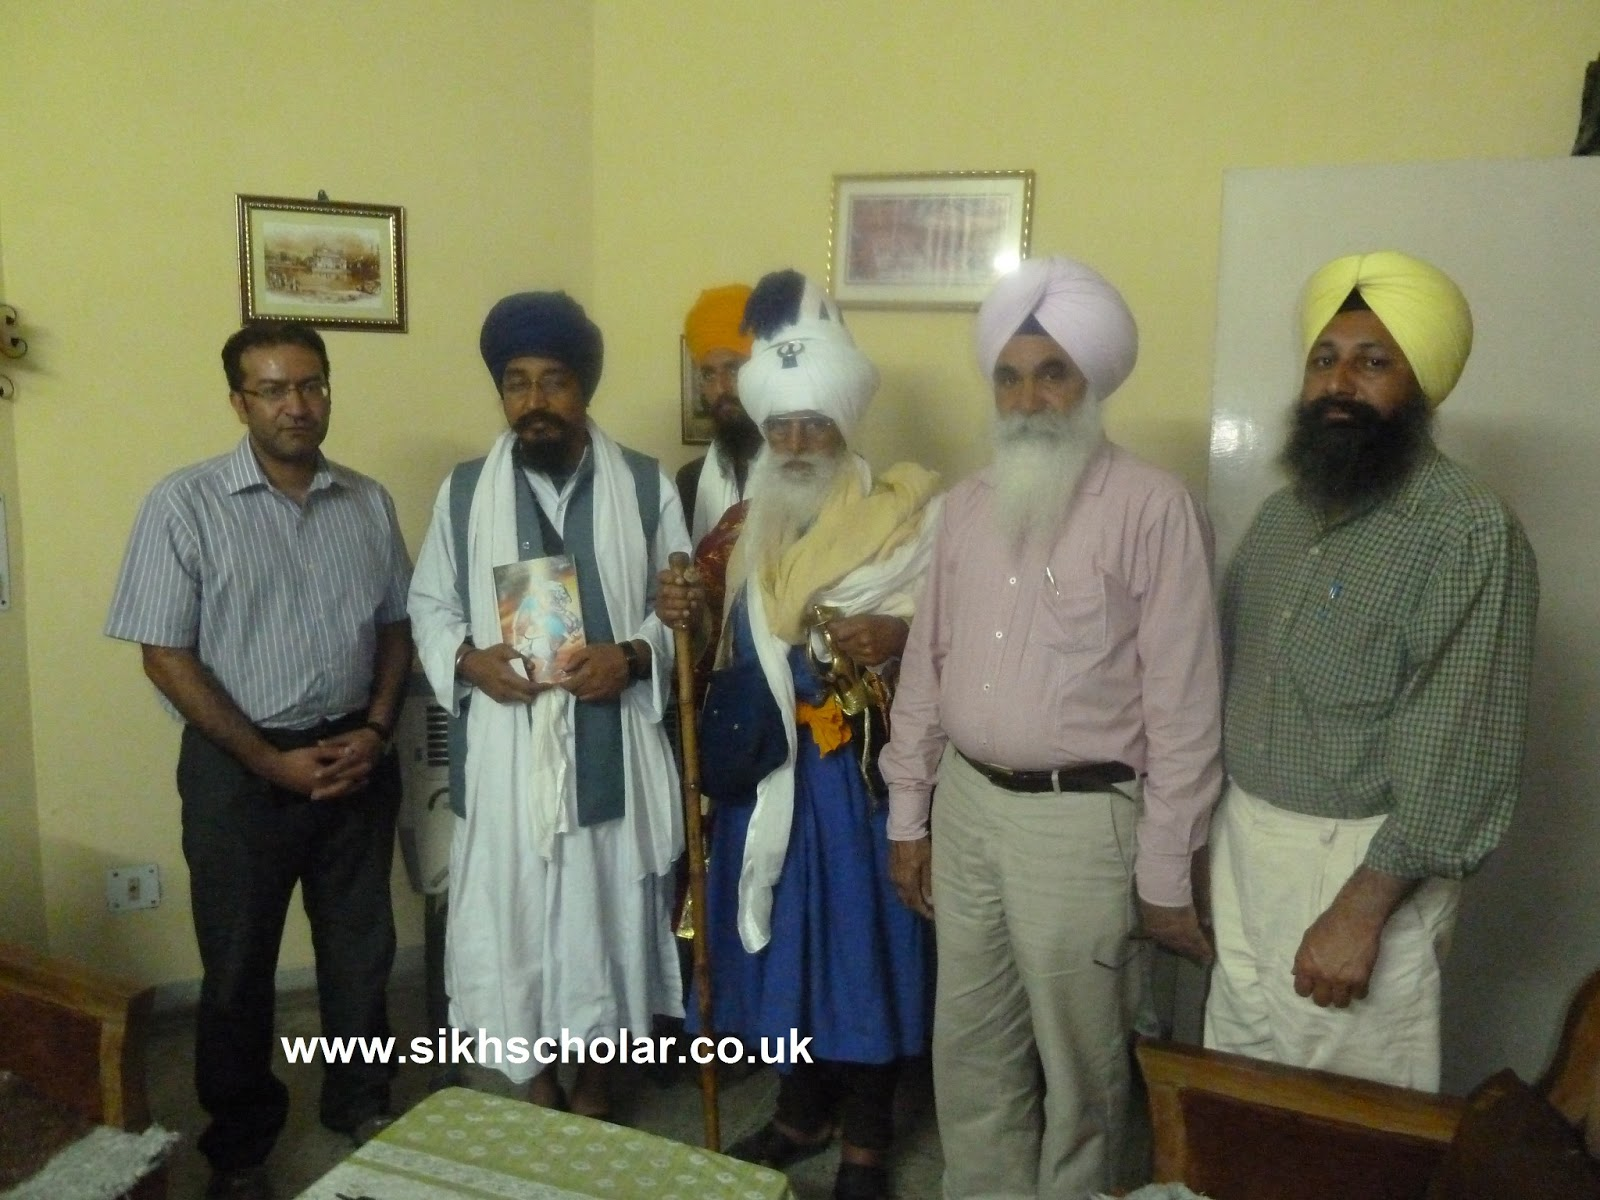 Baba gurinder singh dhillon family photo 6 Great